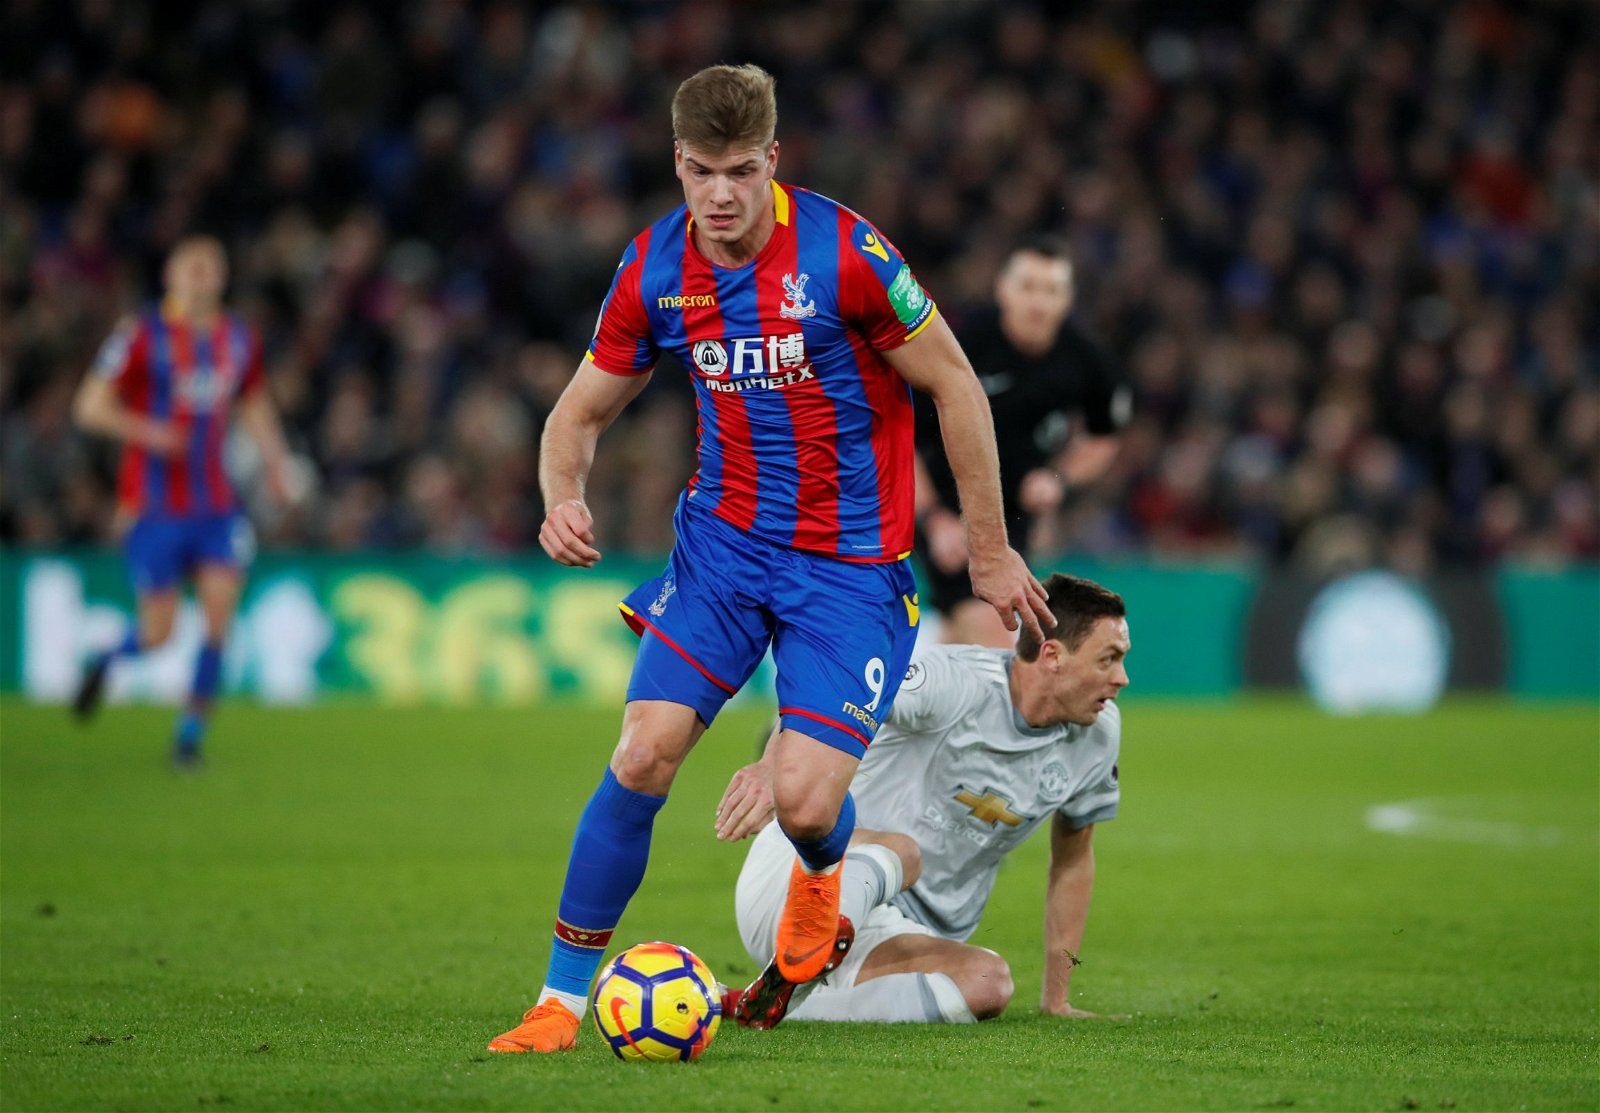 Crystal Palace's Alexander Sorloth dribbles away from Manchester United's Nemanja Matic